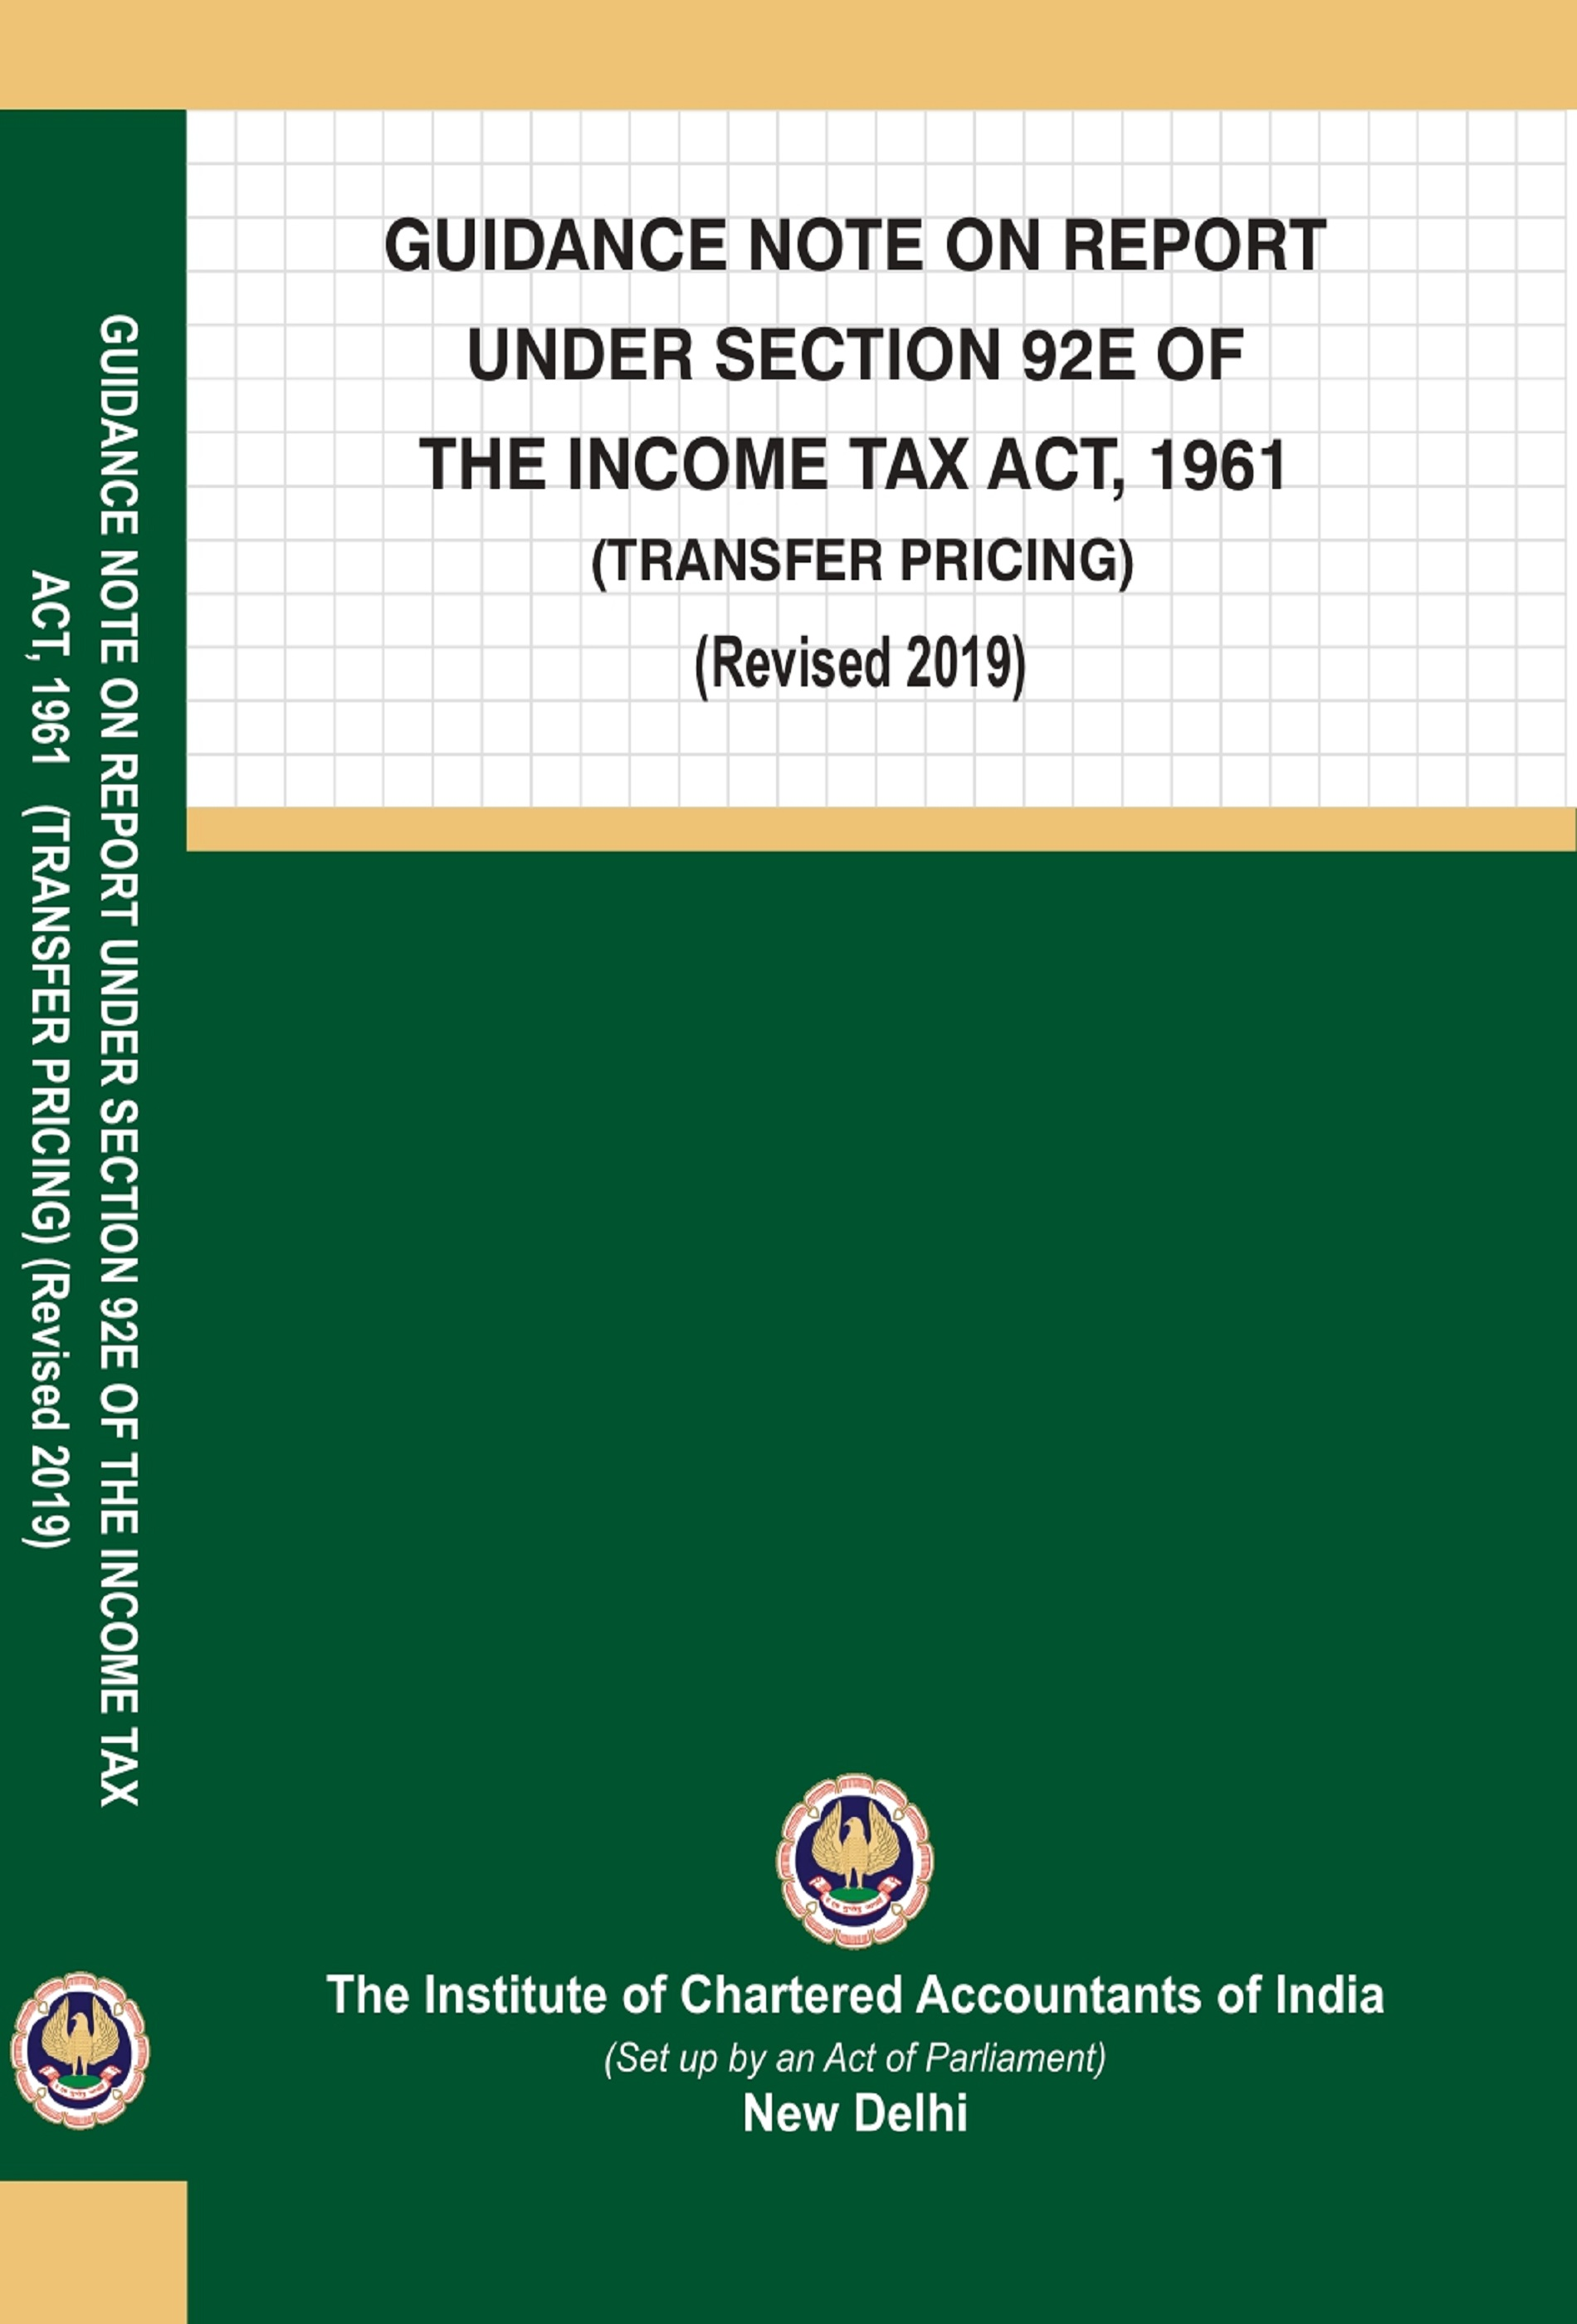 Guidance Note on Report Under Section 92E of the Income-tax Act, 1961 (Transfer Pricing) (Revised November, 2019 Edition)